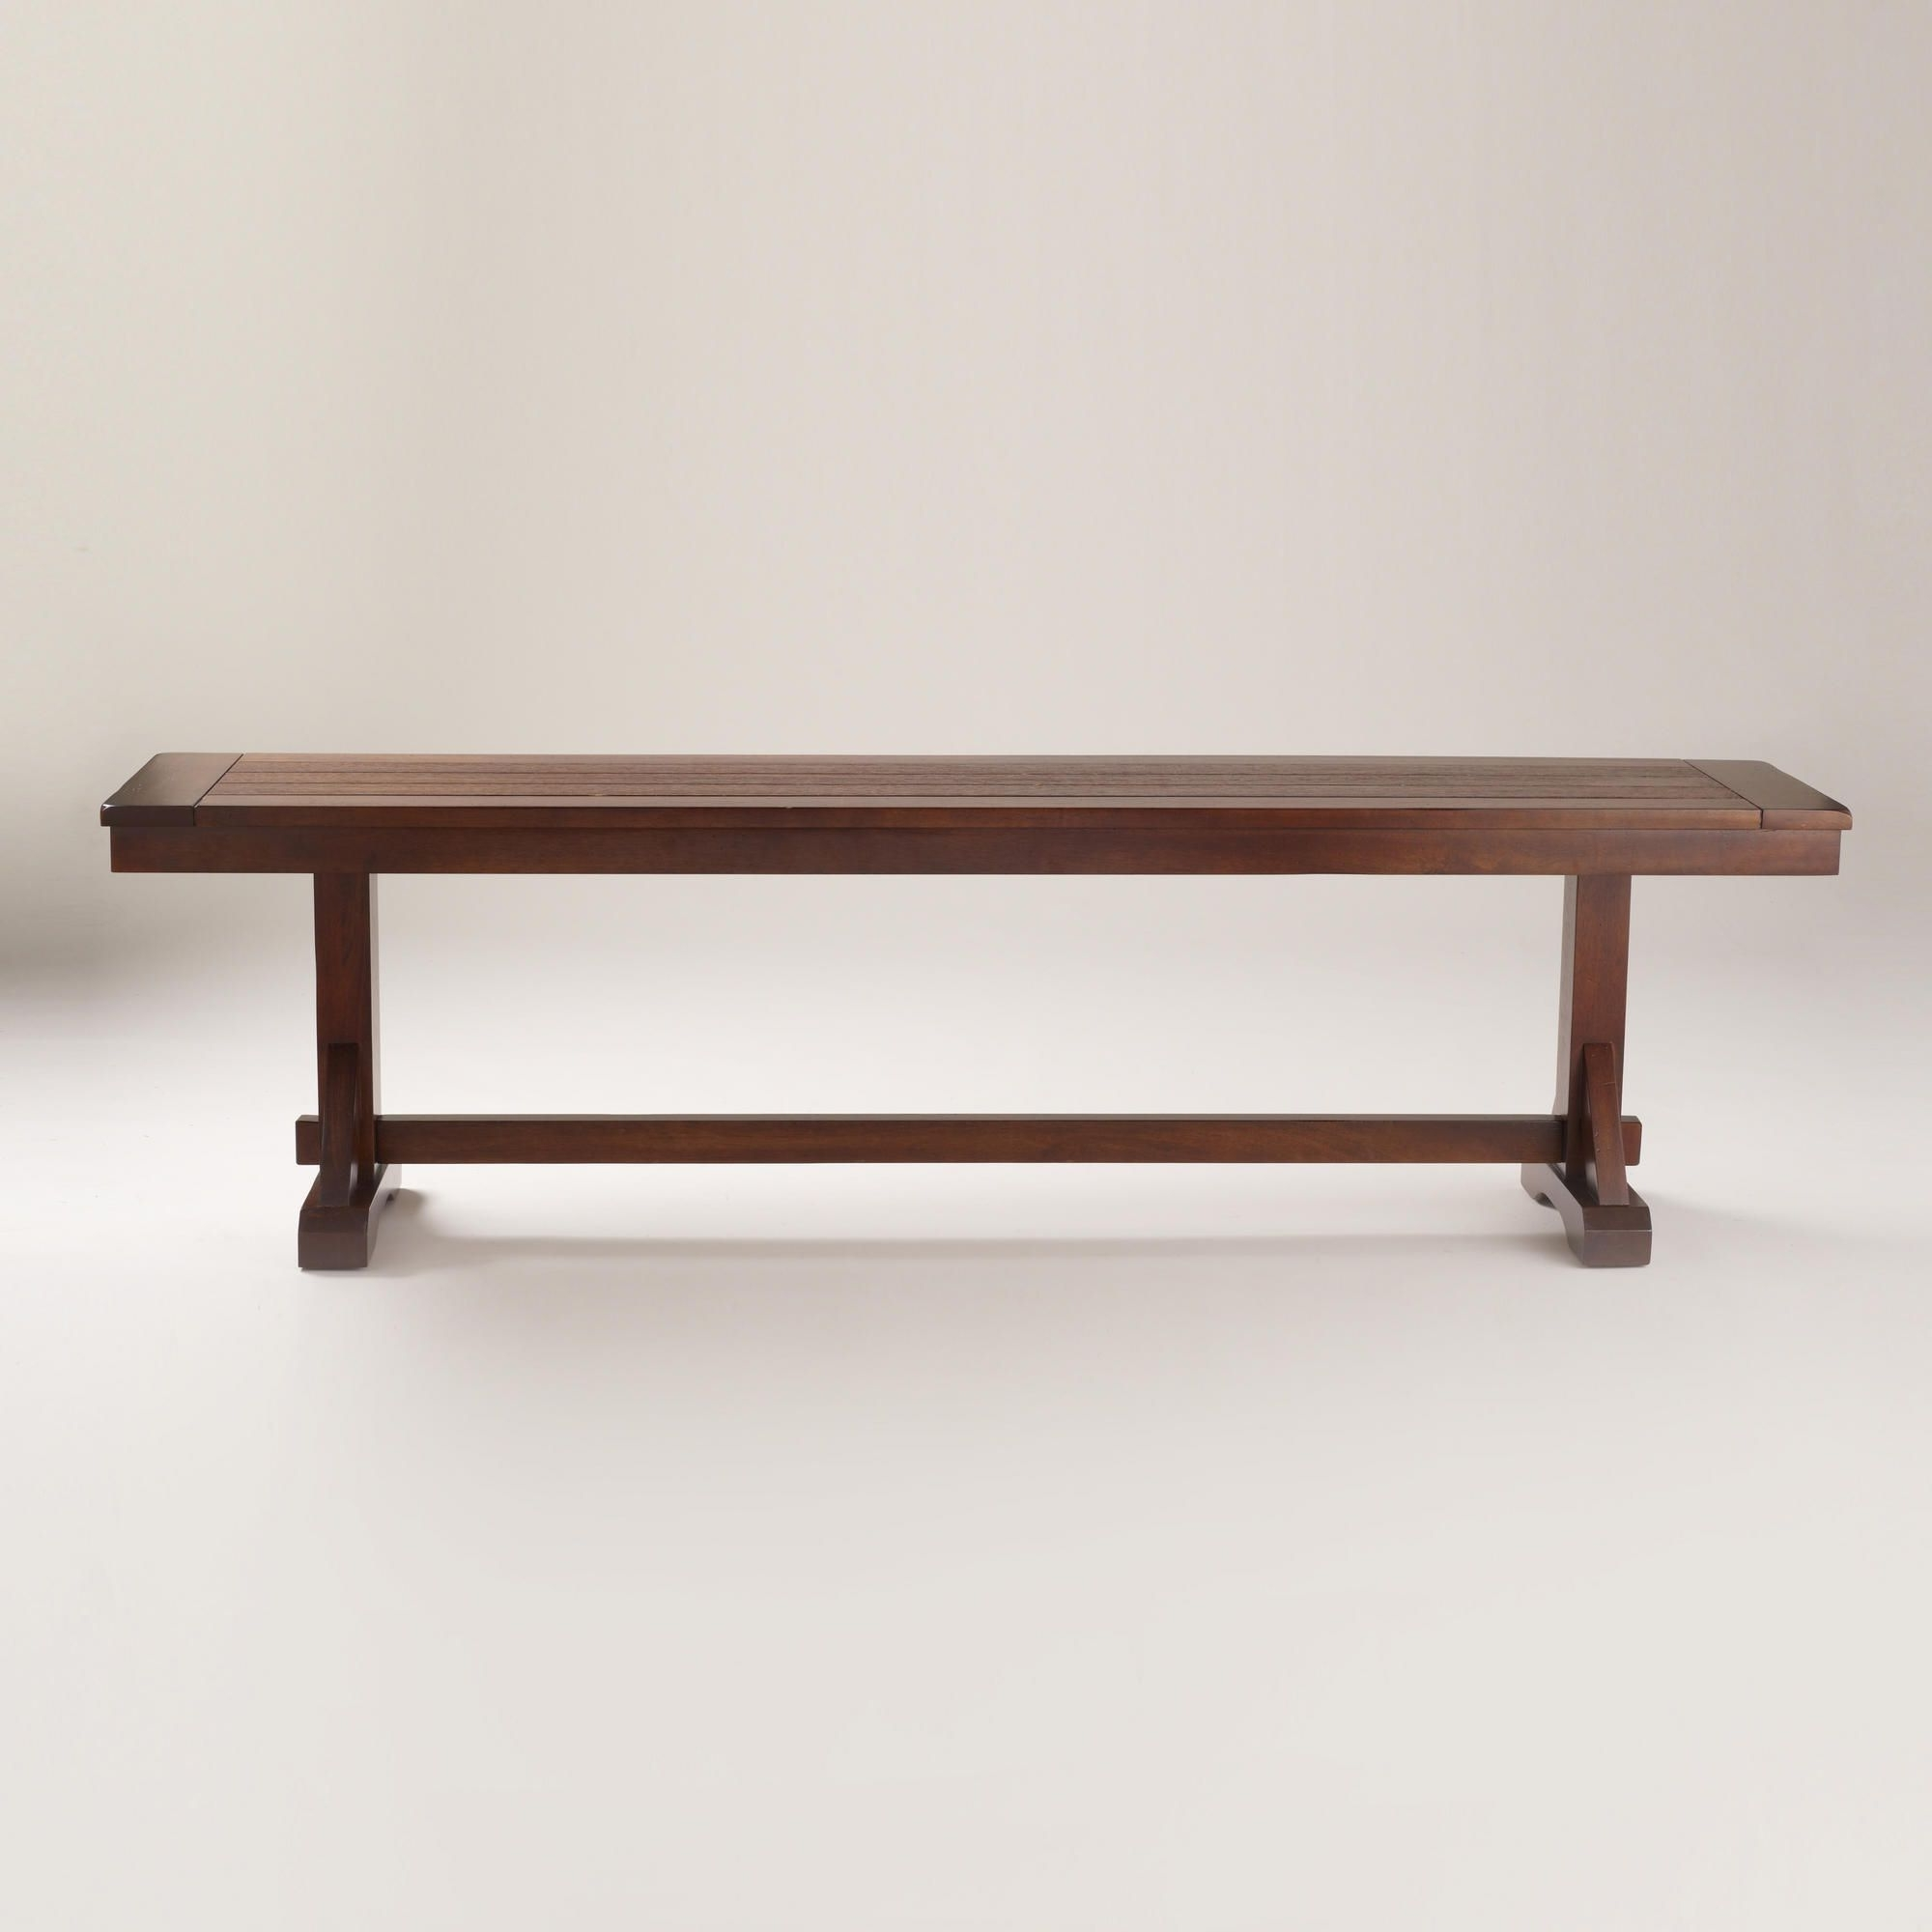 World Market Benches Like This Make Great Pertaining To Best And Newest Verona Cocktail Tables (View 20 of 20)